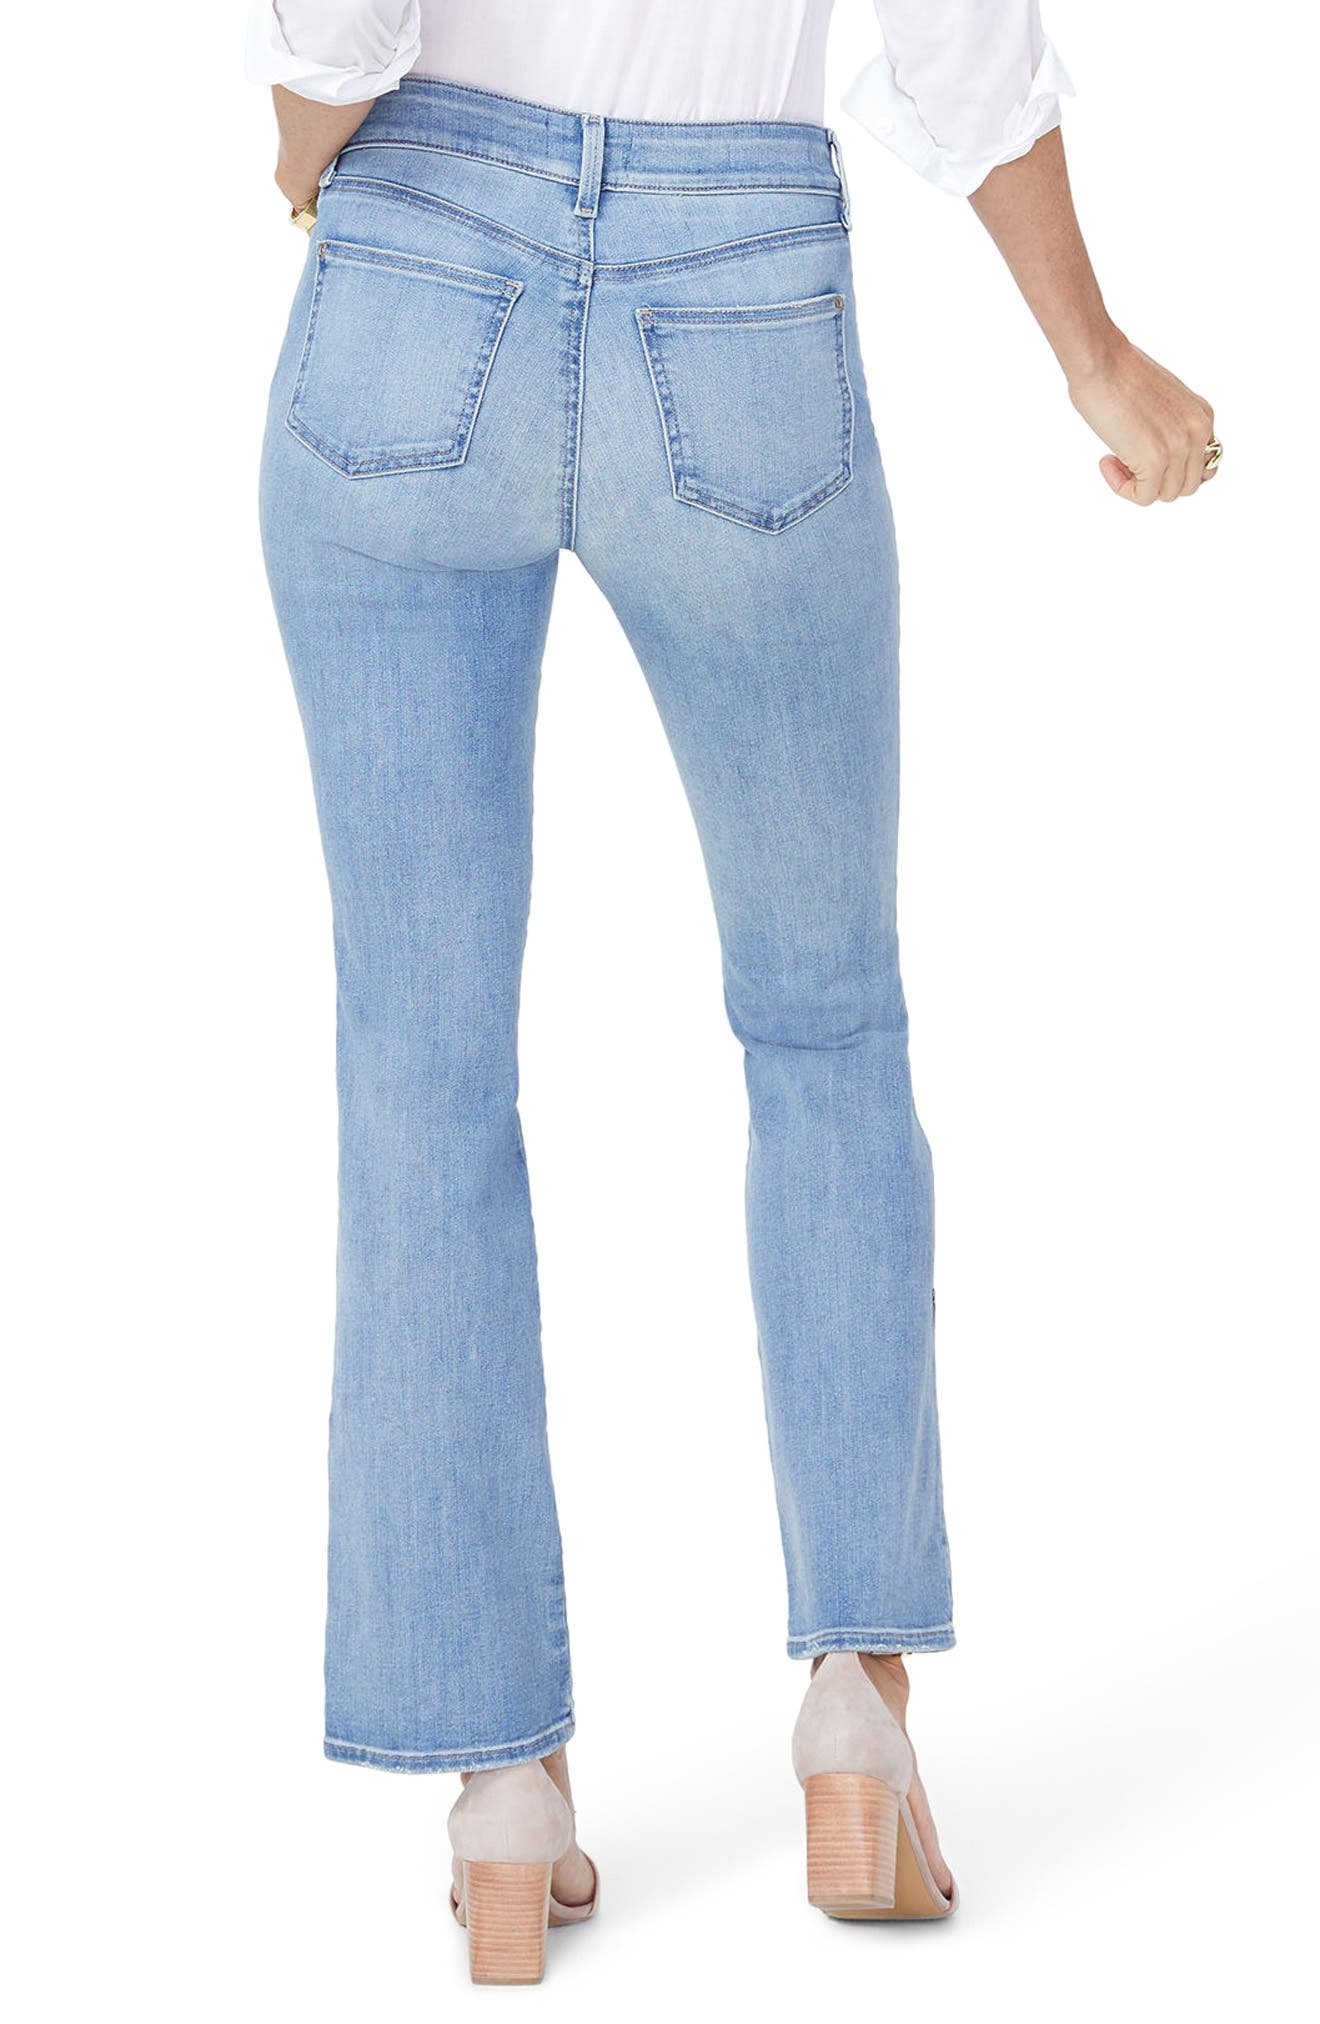 Barbara Butterfly Bootcut Jeans,                             Alternate thumbnail 2, color,                             418